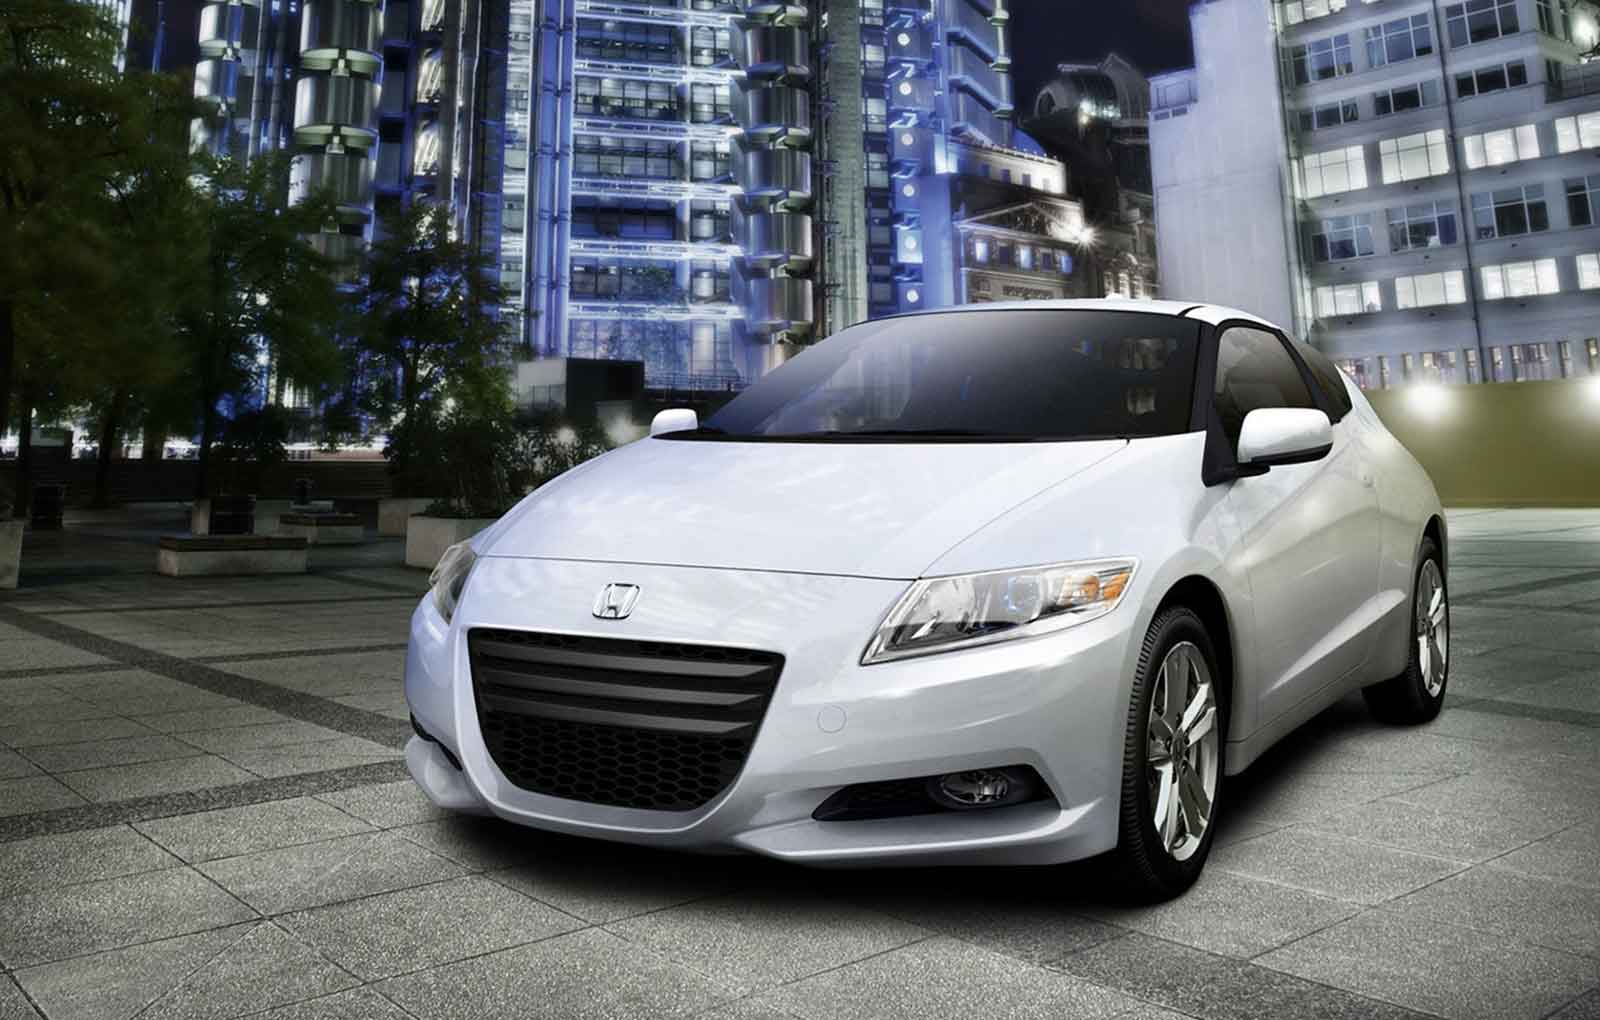 Honda CR-Z at Geneva Motor Show